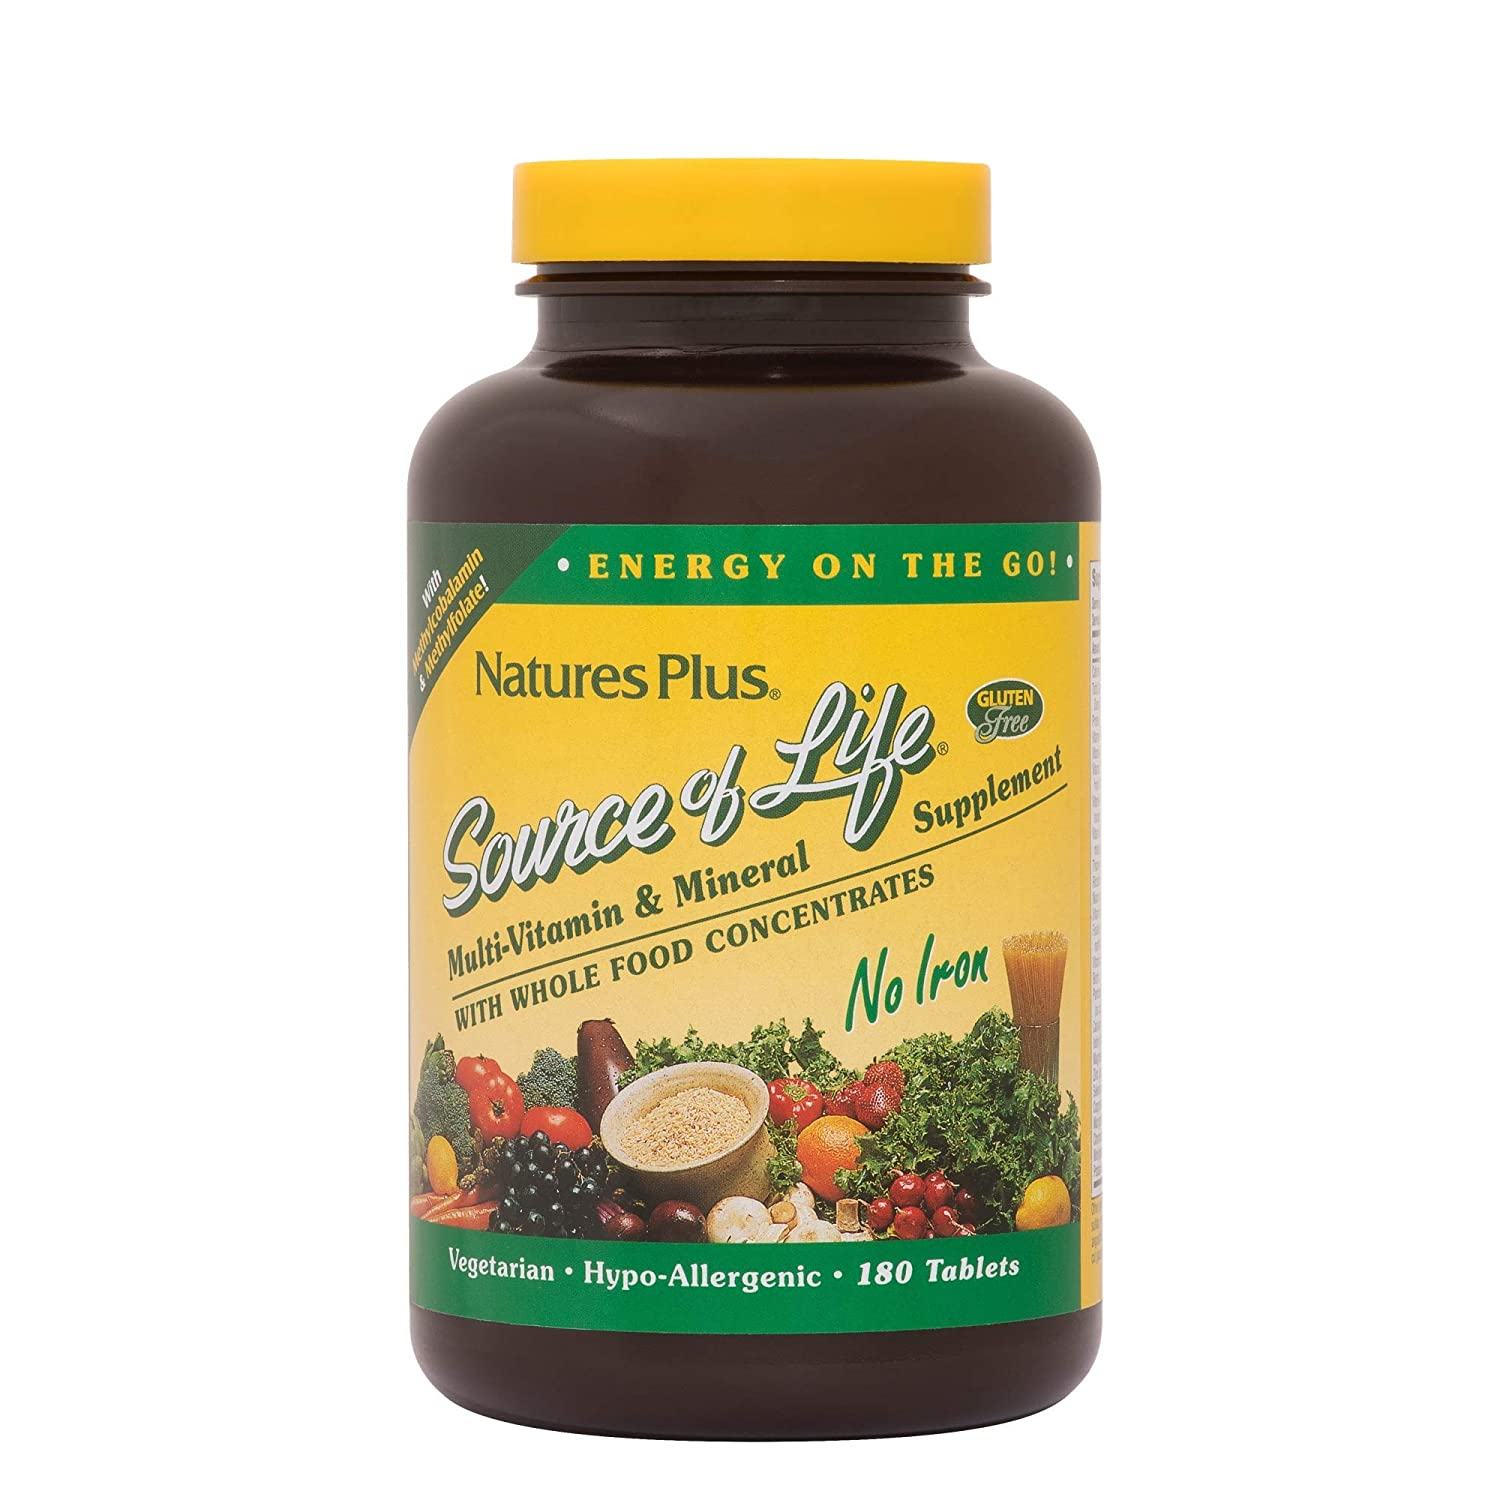 NaturesPlus Source of Life No Iron Tablets – 180 Vegetarian Tablets – Whole Food Multivitamin Mineral Supplement, Energy Immunity Booster- Gluten-Free – 60 Servings